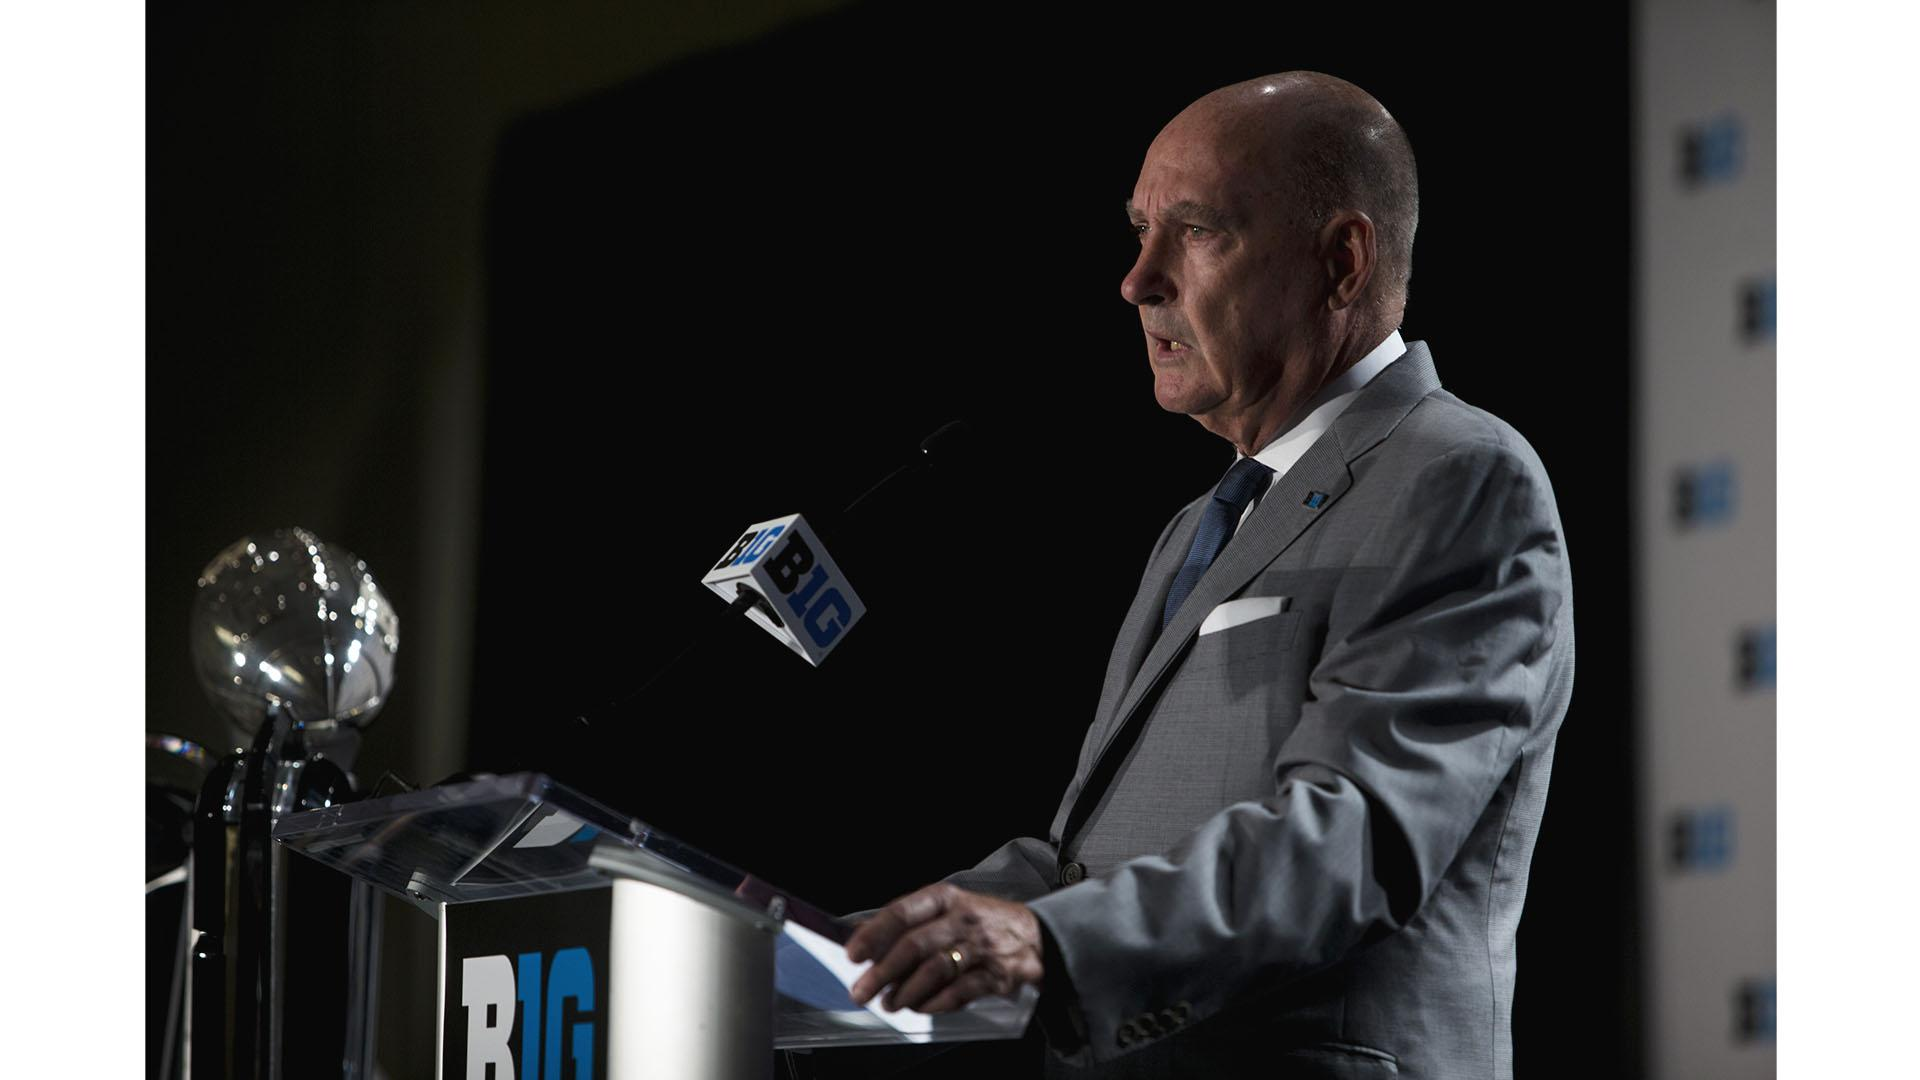 Big Ten Commissioner Jim Delany addresses the media at Big Ten Football Media Days in Chicago on Monday, July 23, 2018. (Nick Rohlman/The Daily Iowan)